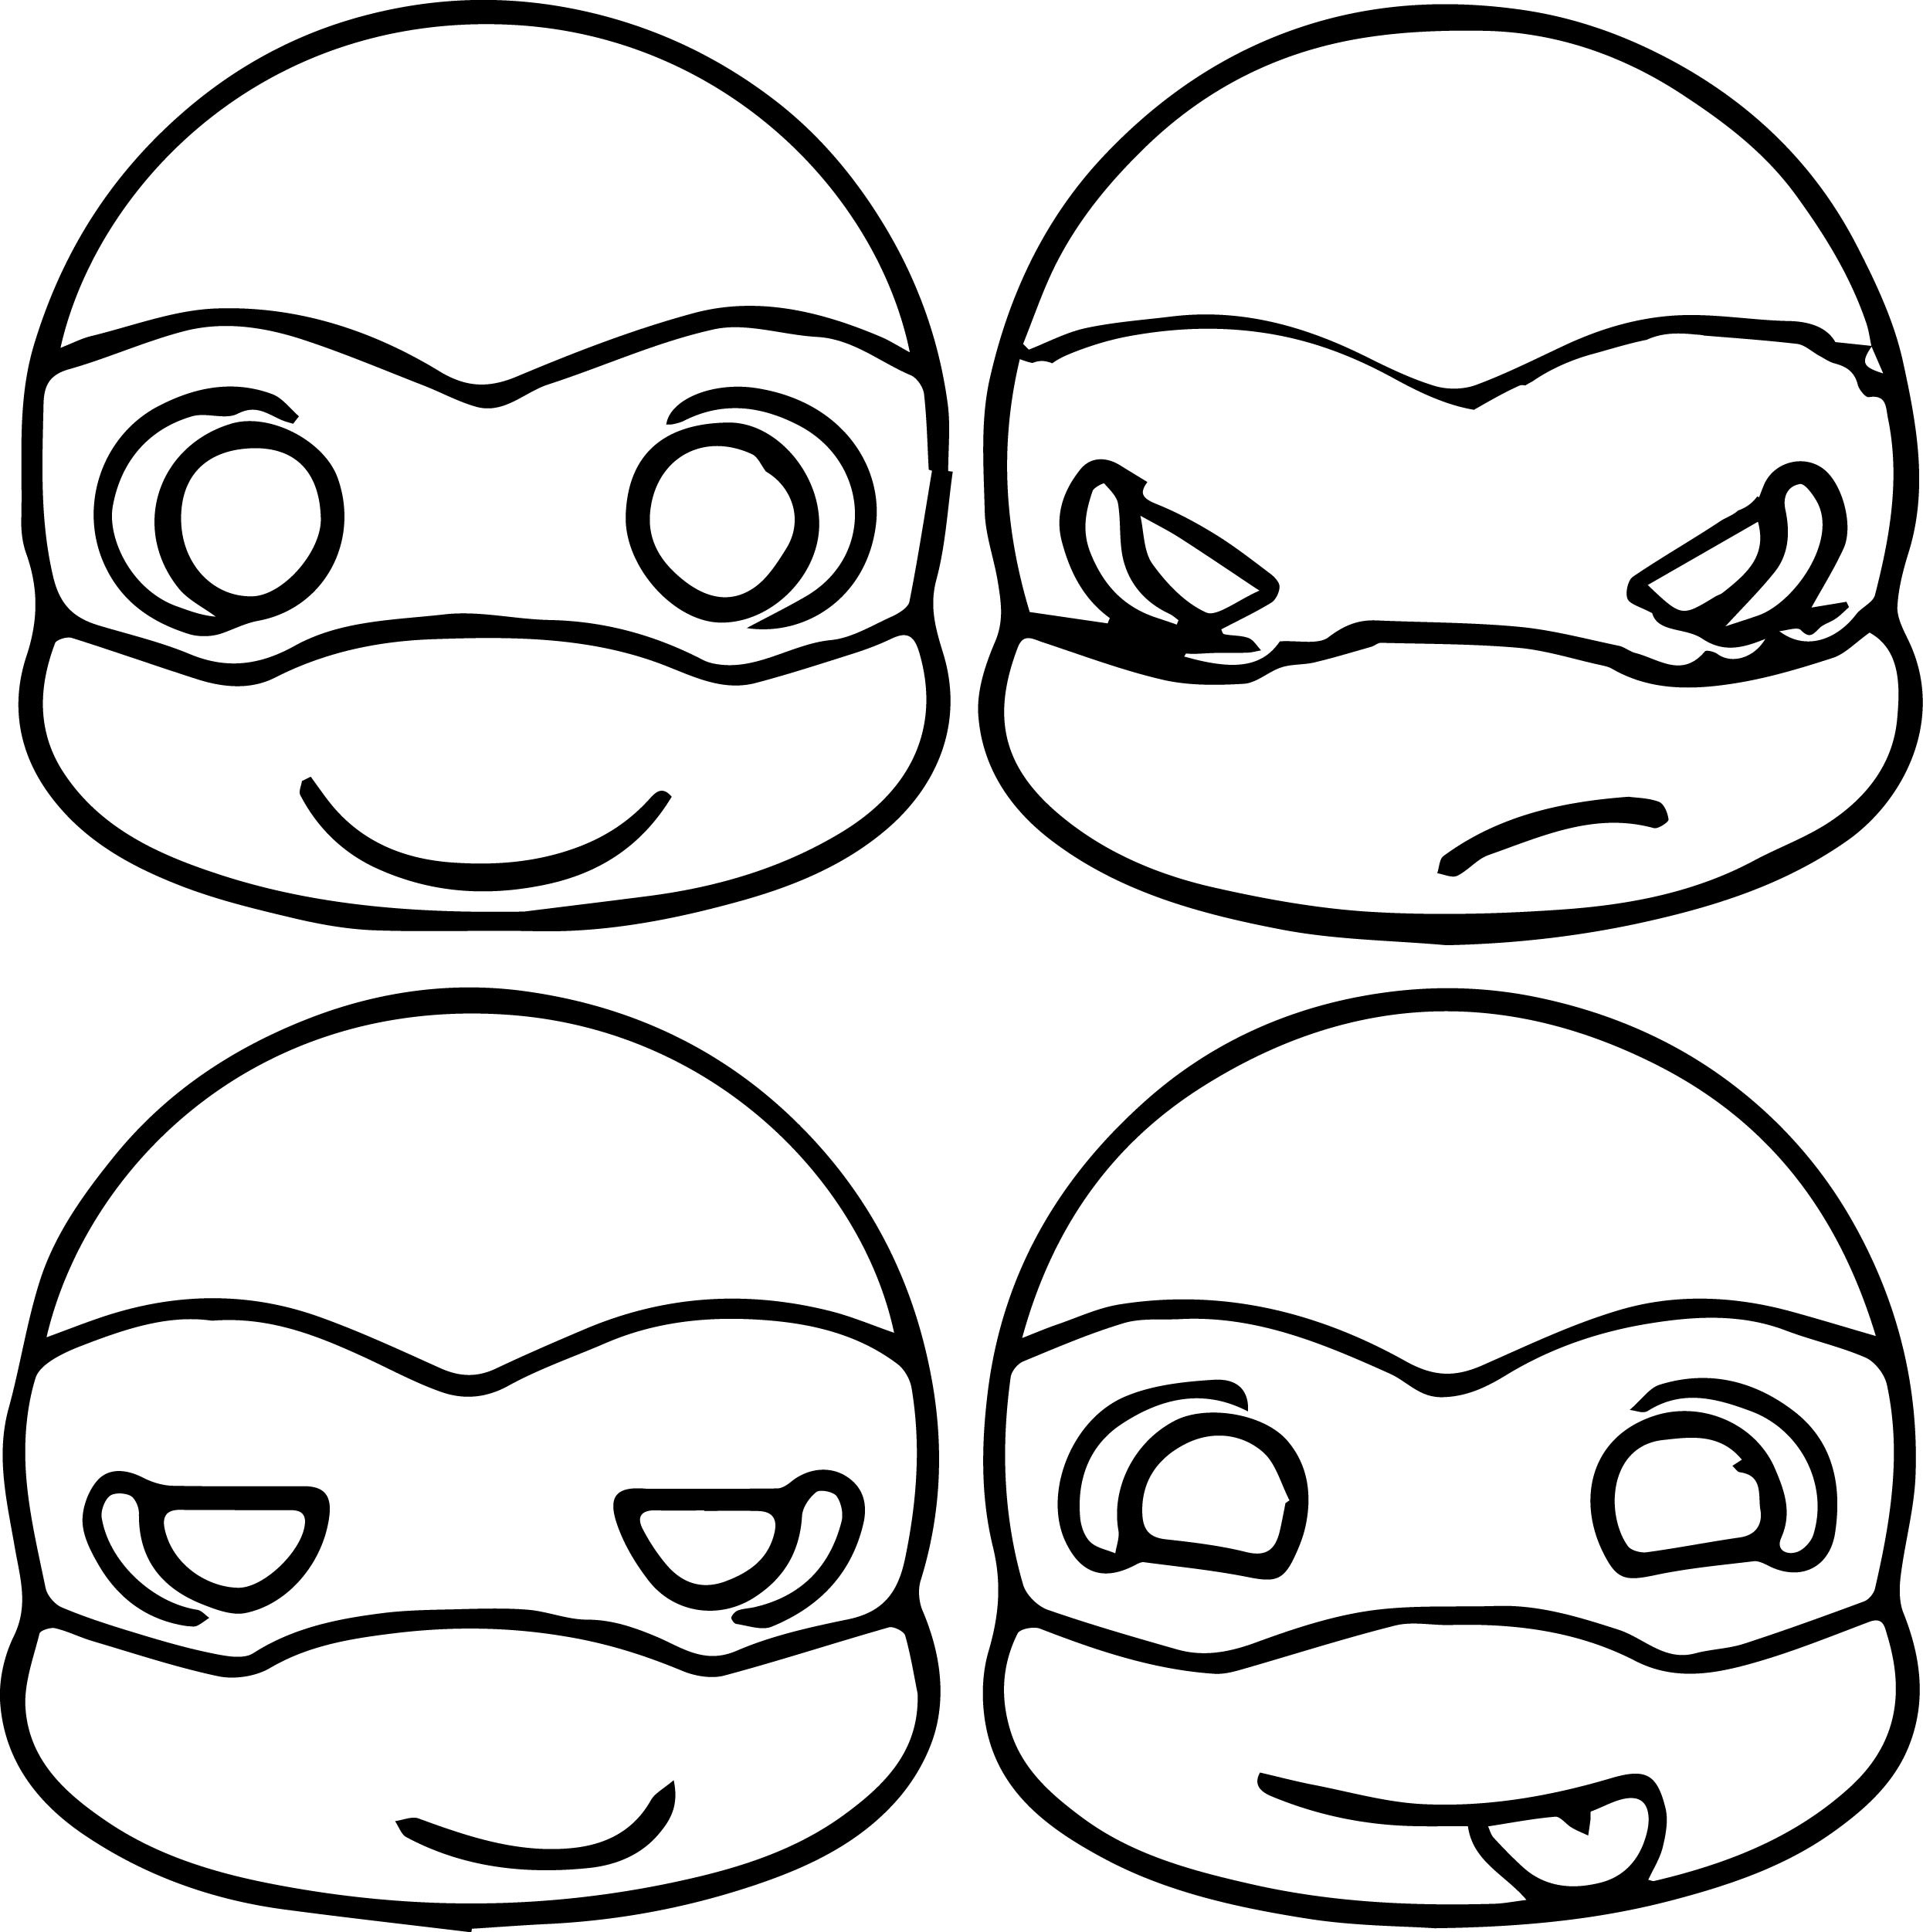 2490x2502 Simple Coloring Pages Splendid Teenage Mutant Ninja Turtles